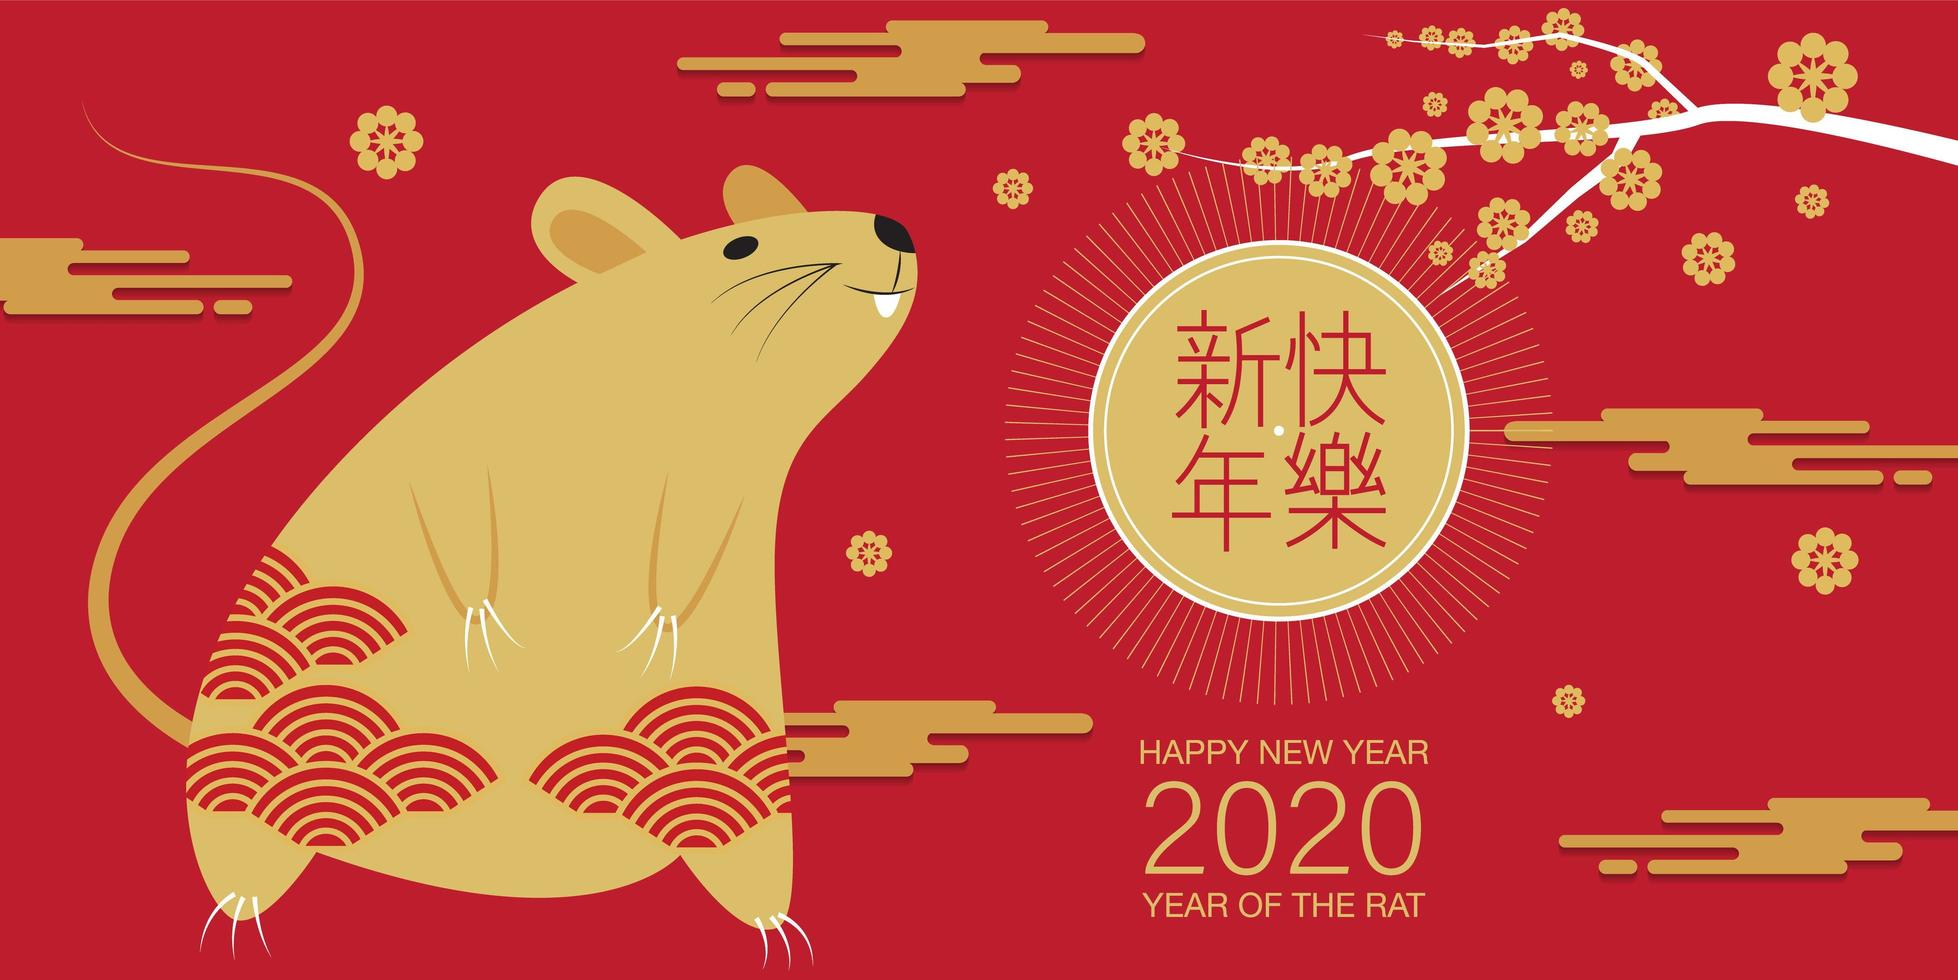 Chinese New Year Banner with Rat and Blossoms vector